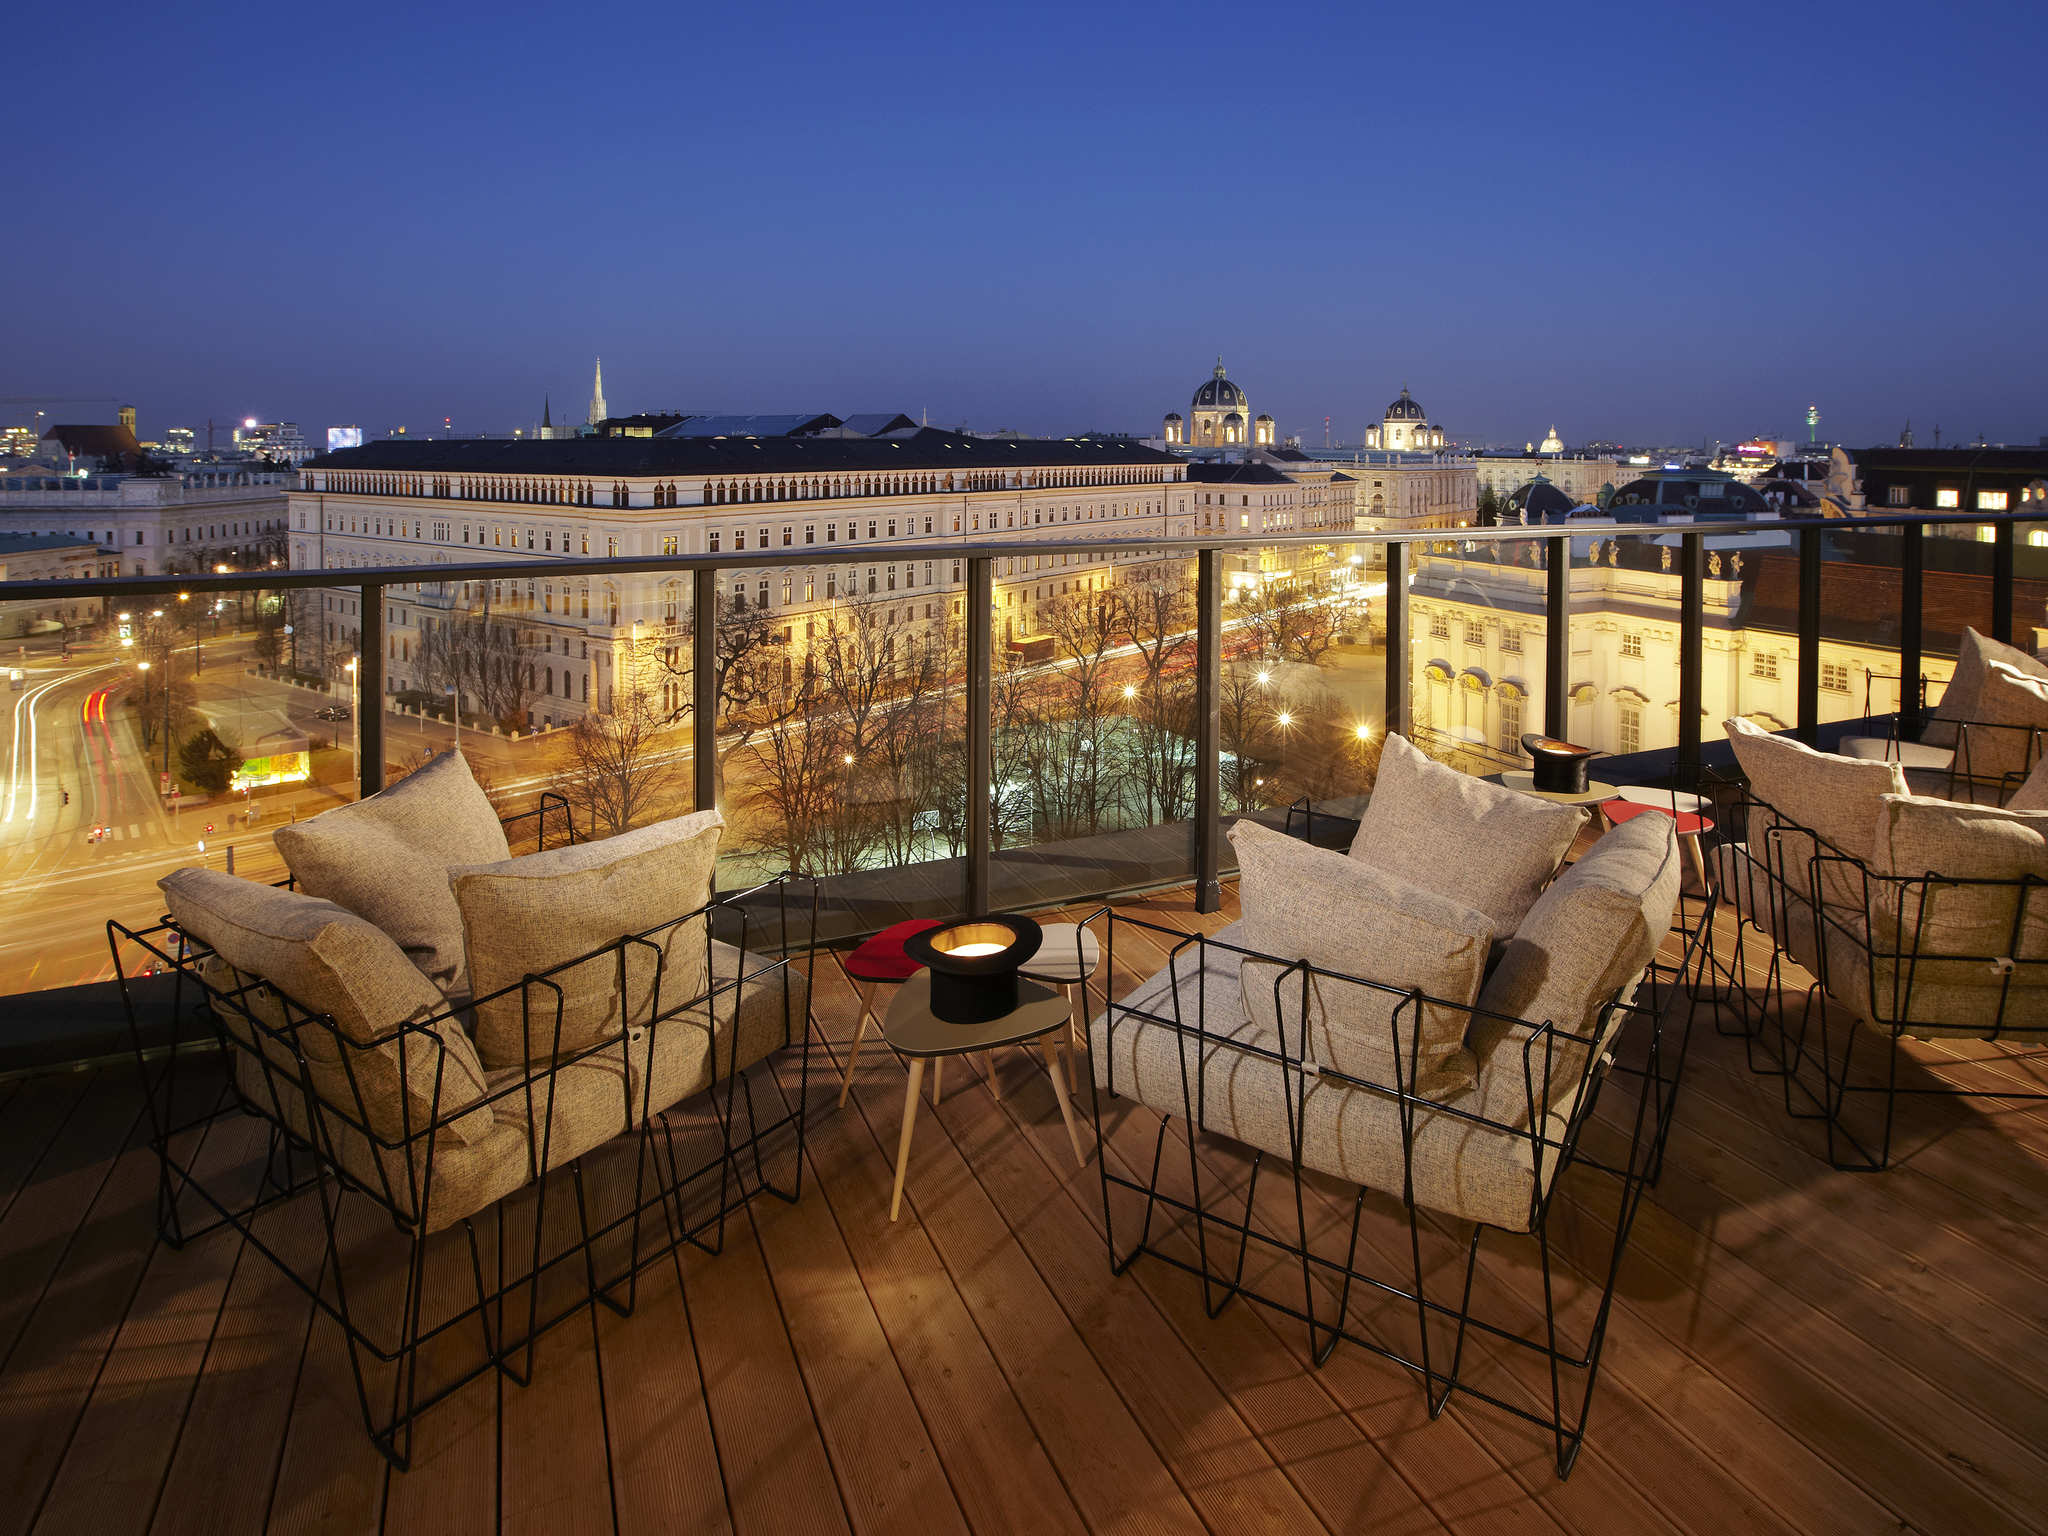 Hotel – Hotel 25hours Vienna at MuseumsQuartier